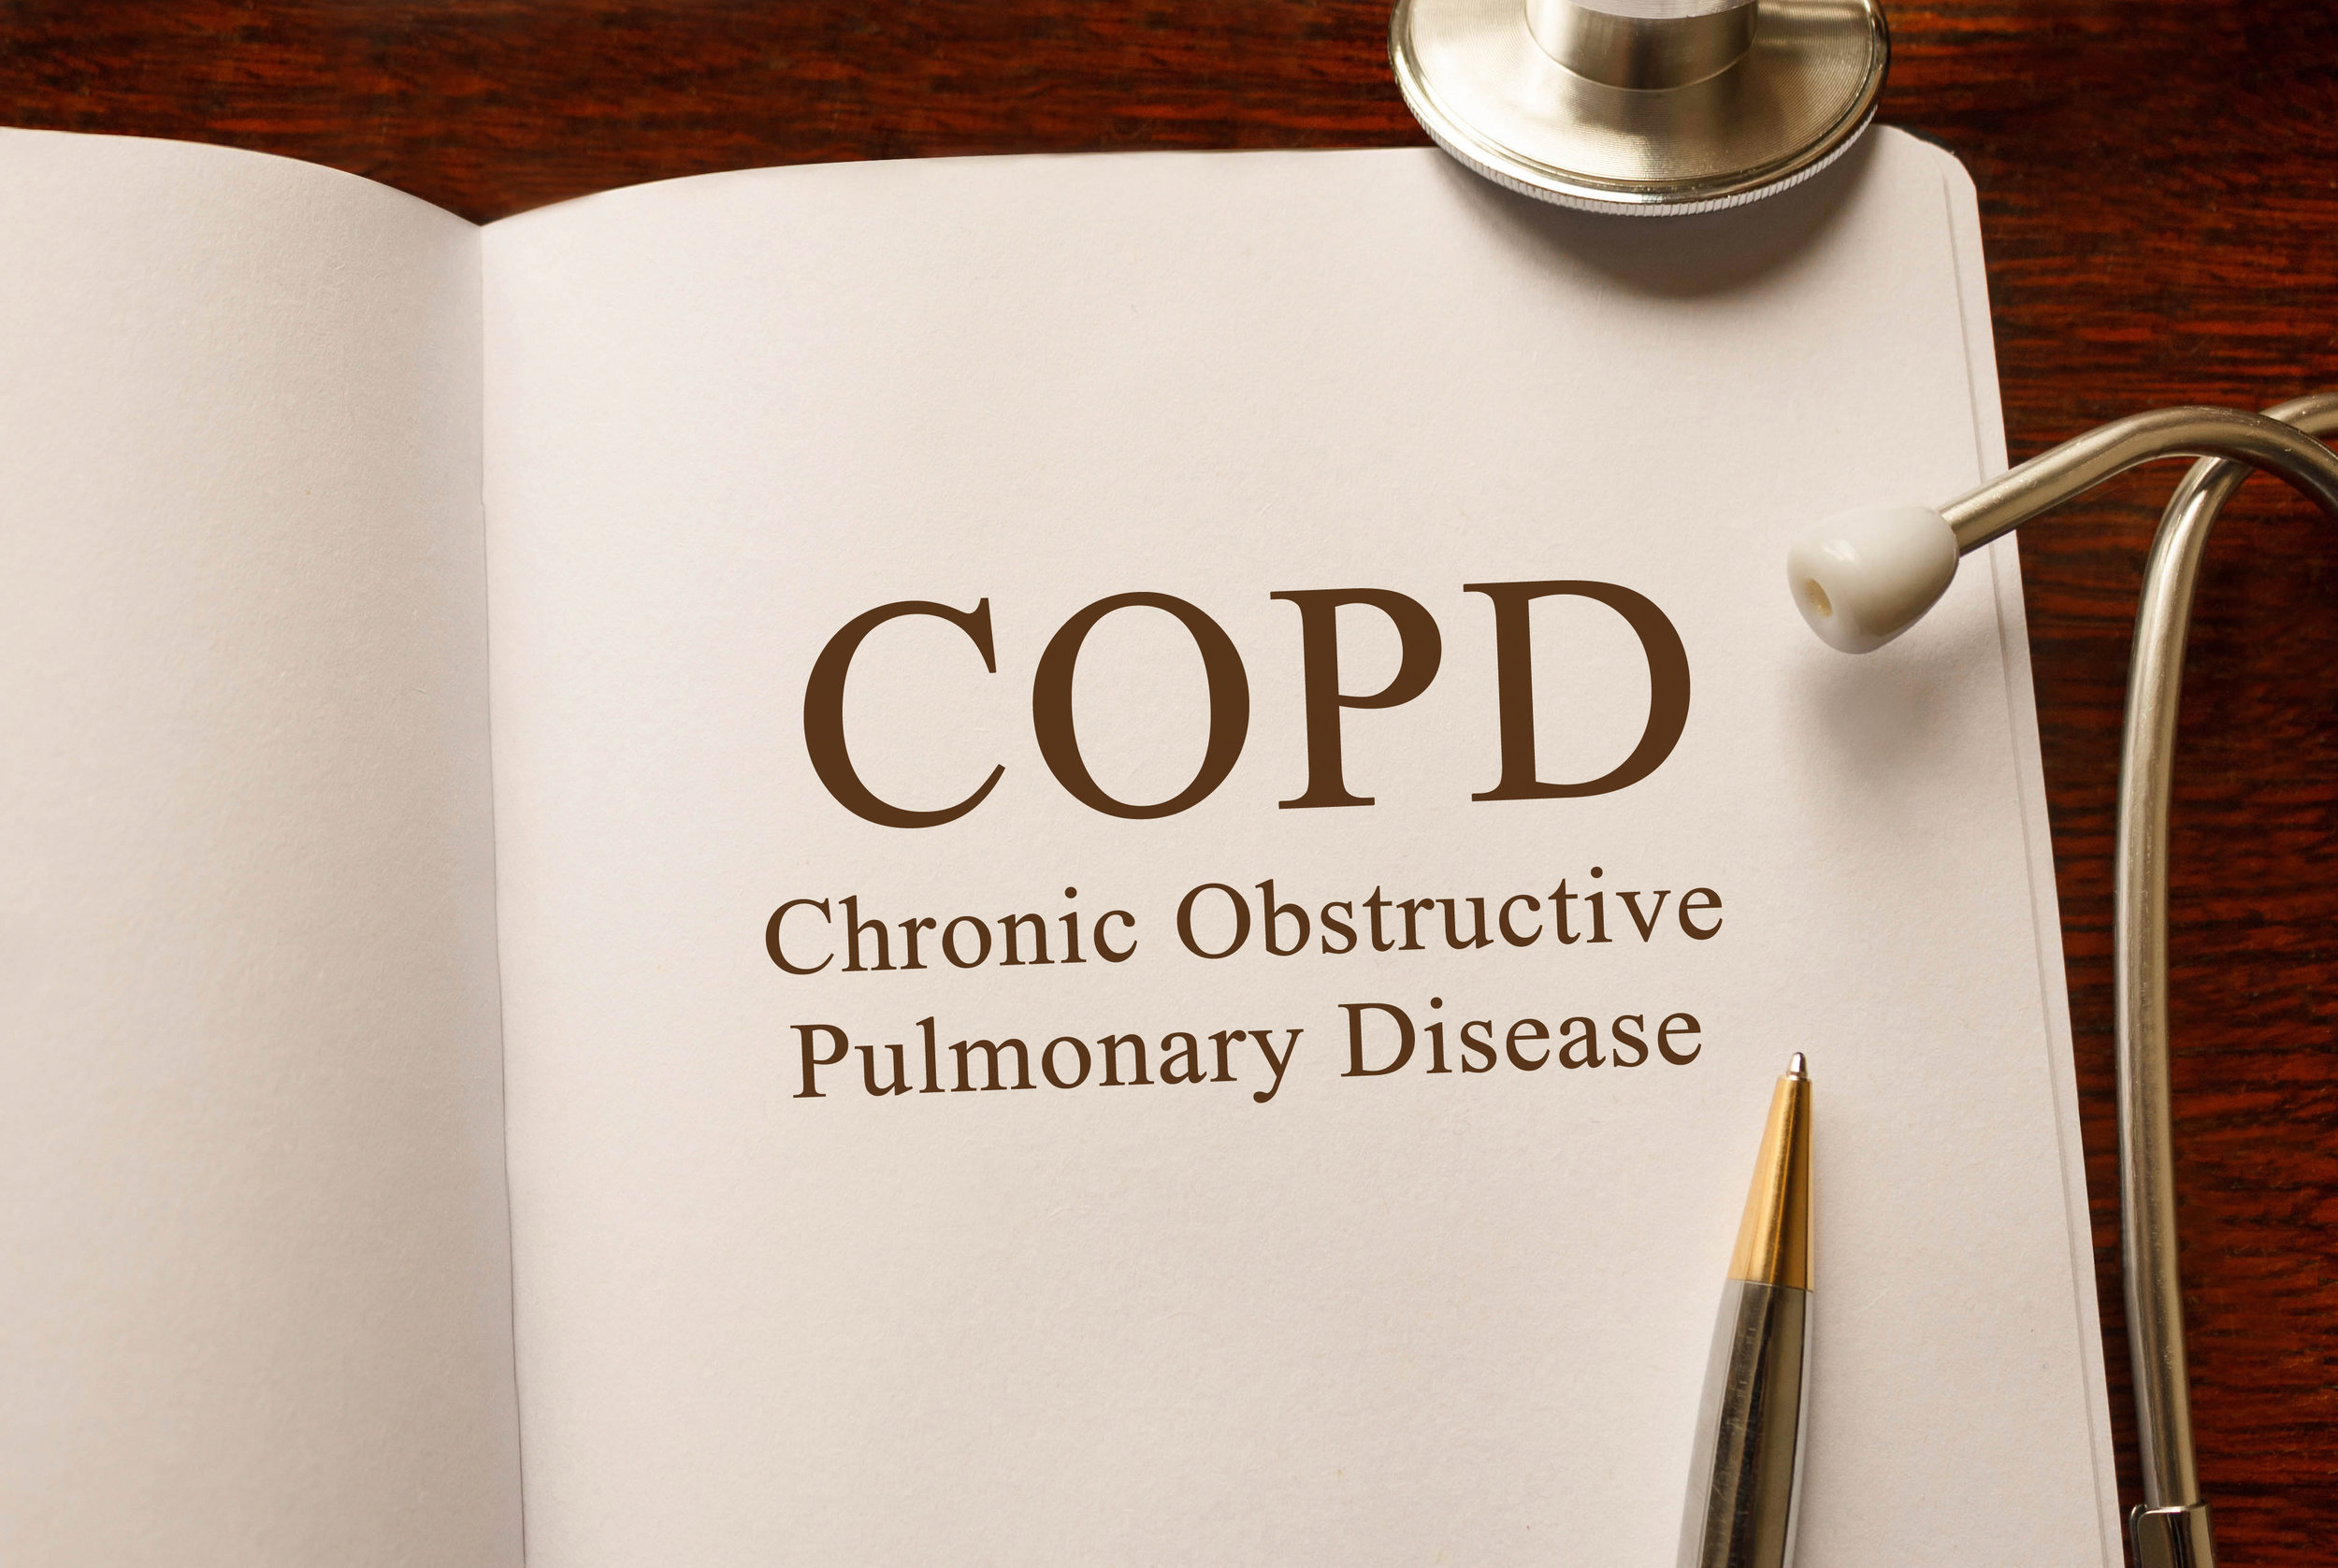 salt-therapy-for-copd.jpg